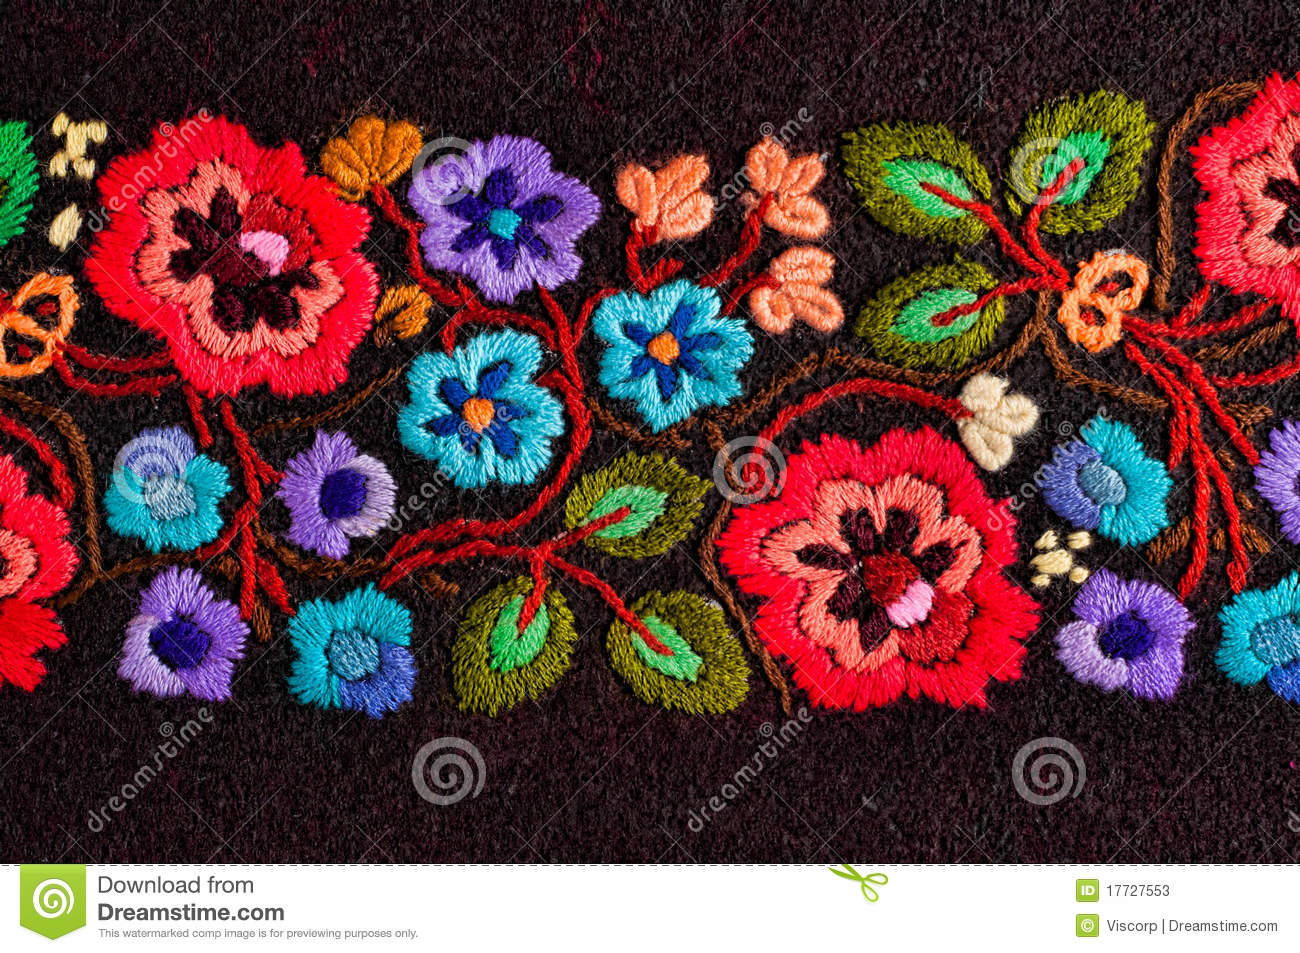 Embroidered Flowers Stock Photos - Image: 17727553